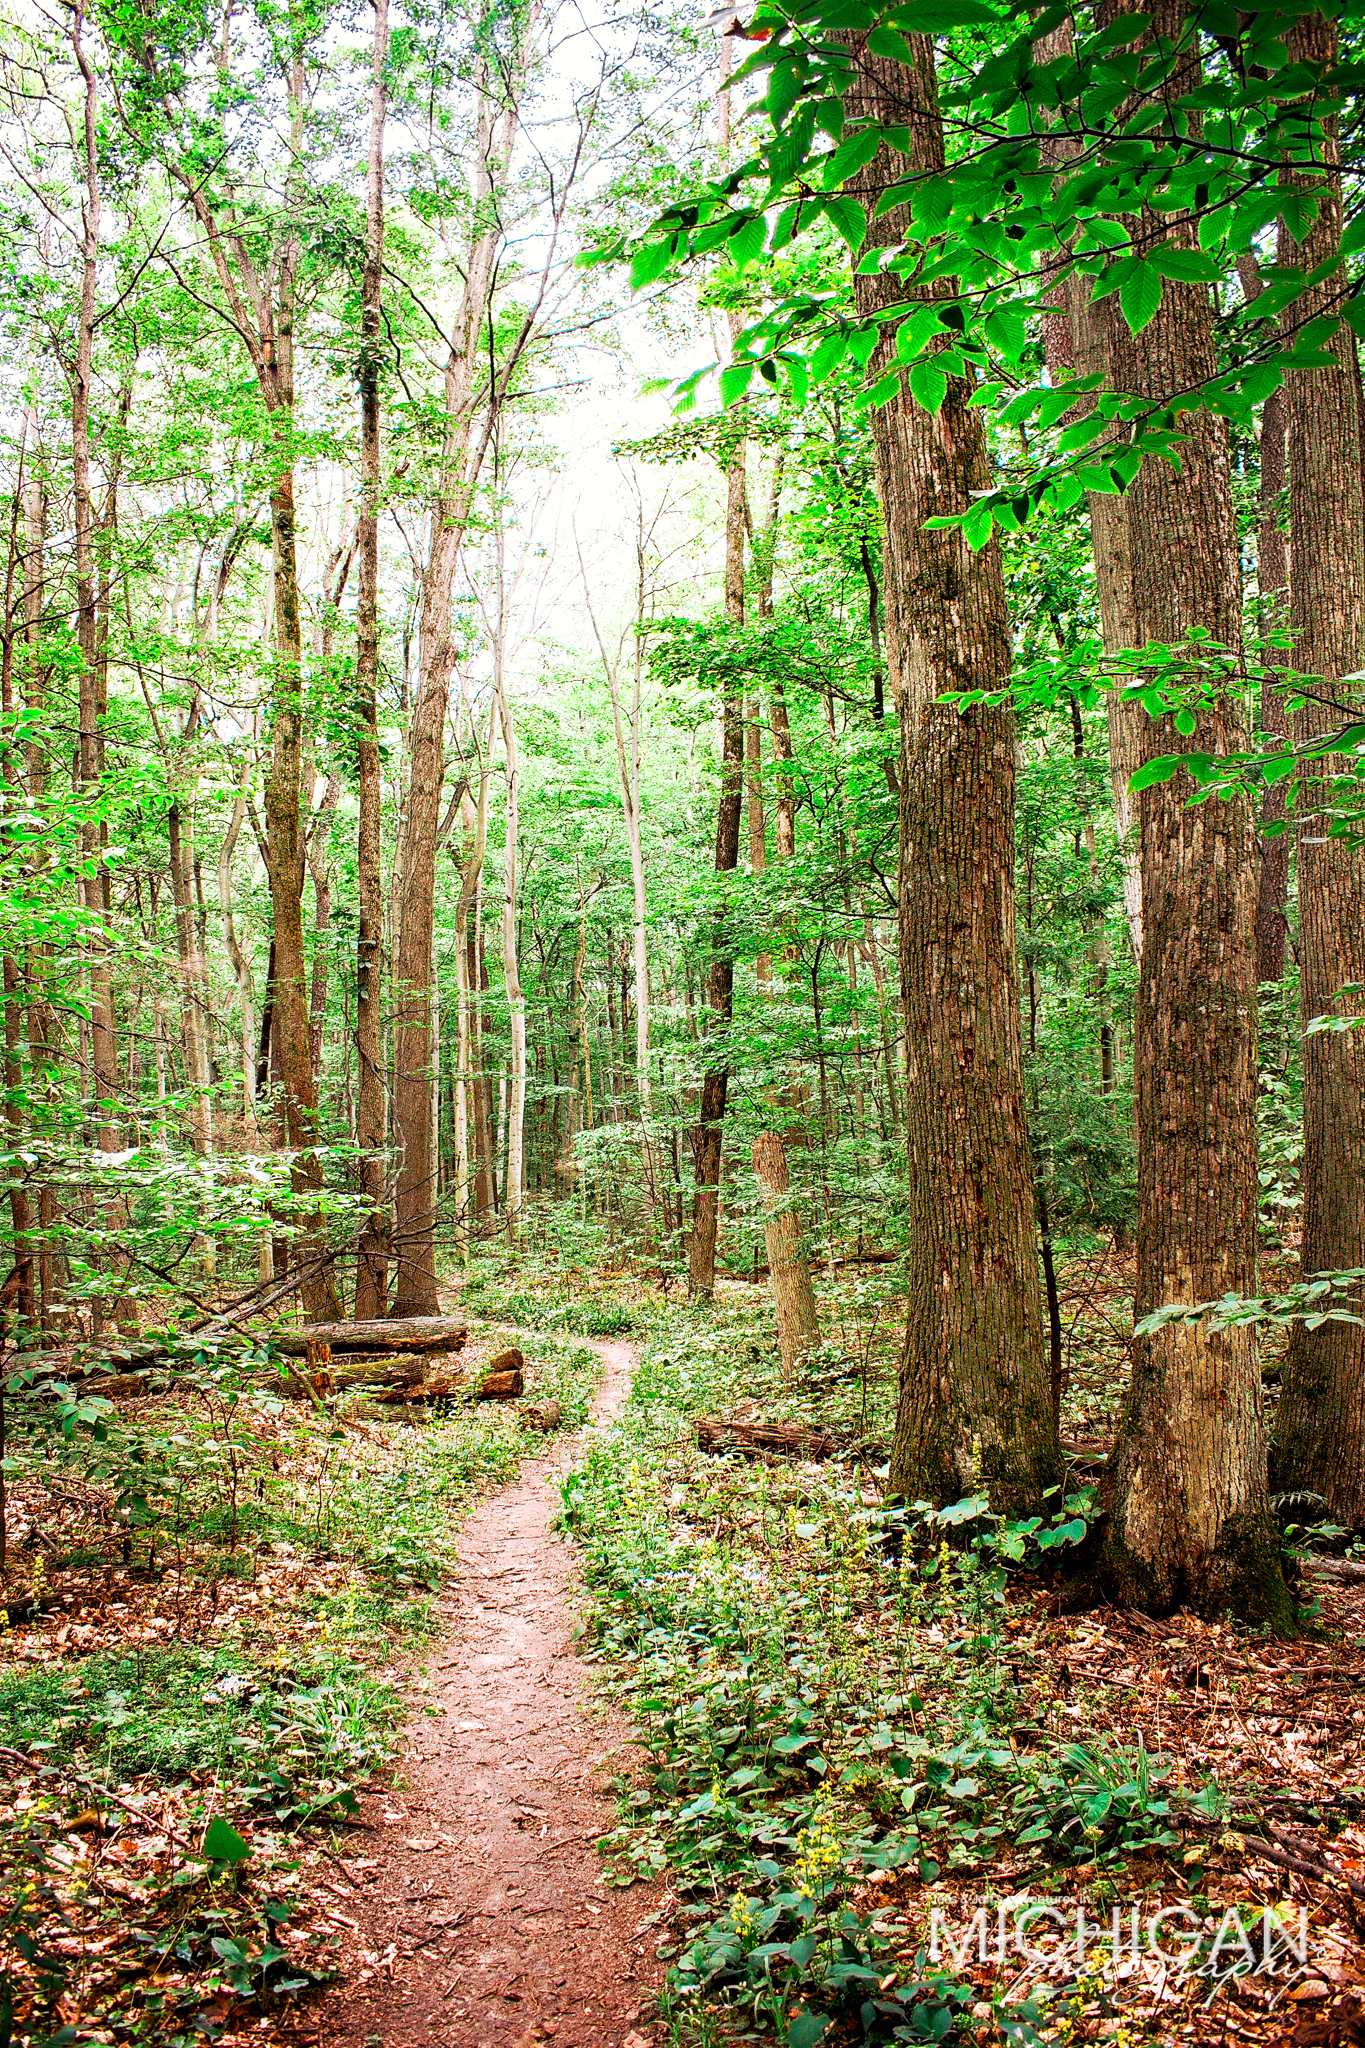 A late spring scene at Old Baldy Trail in Arcadia Michigan